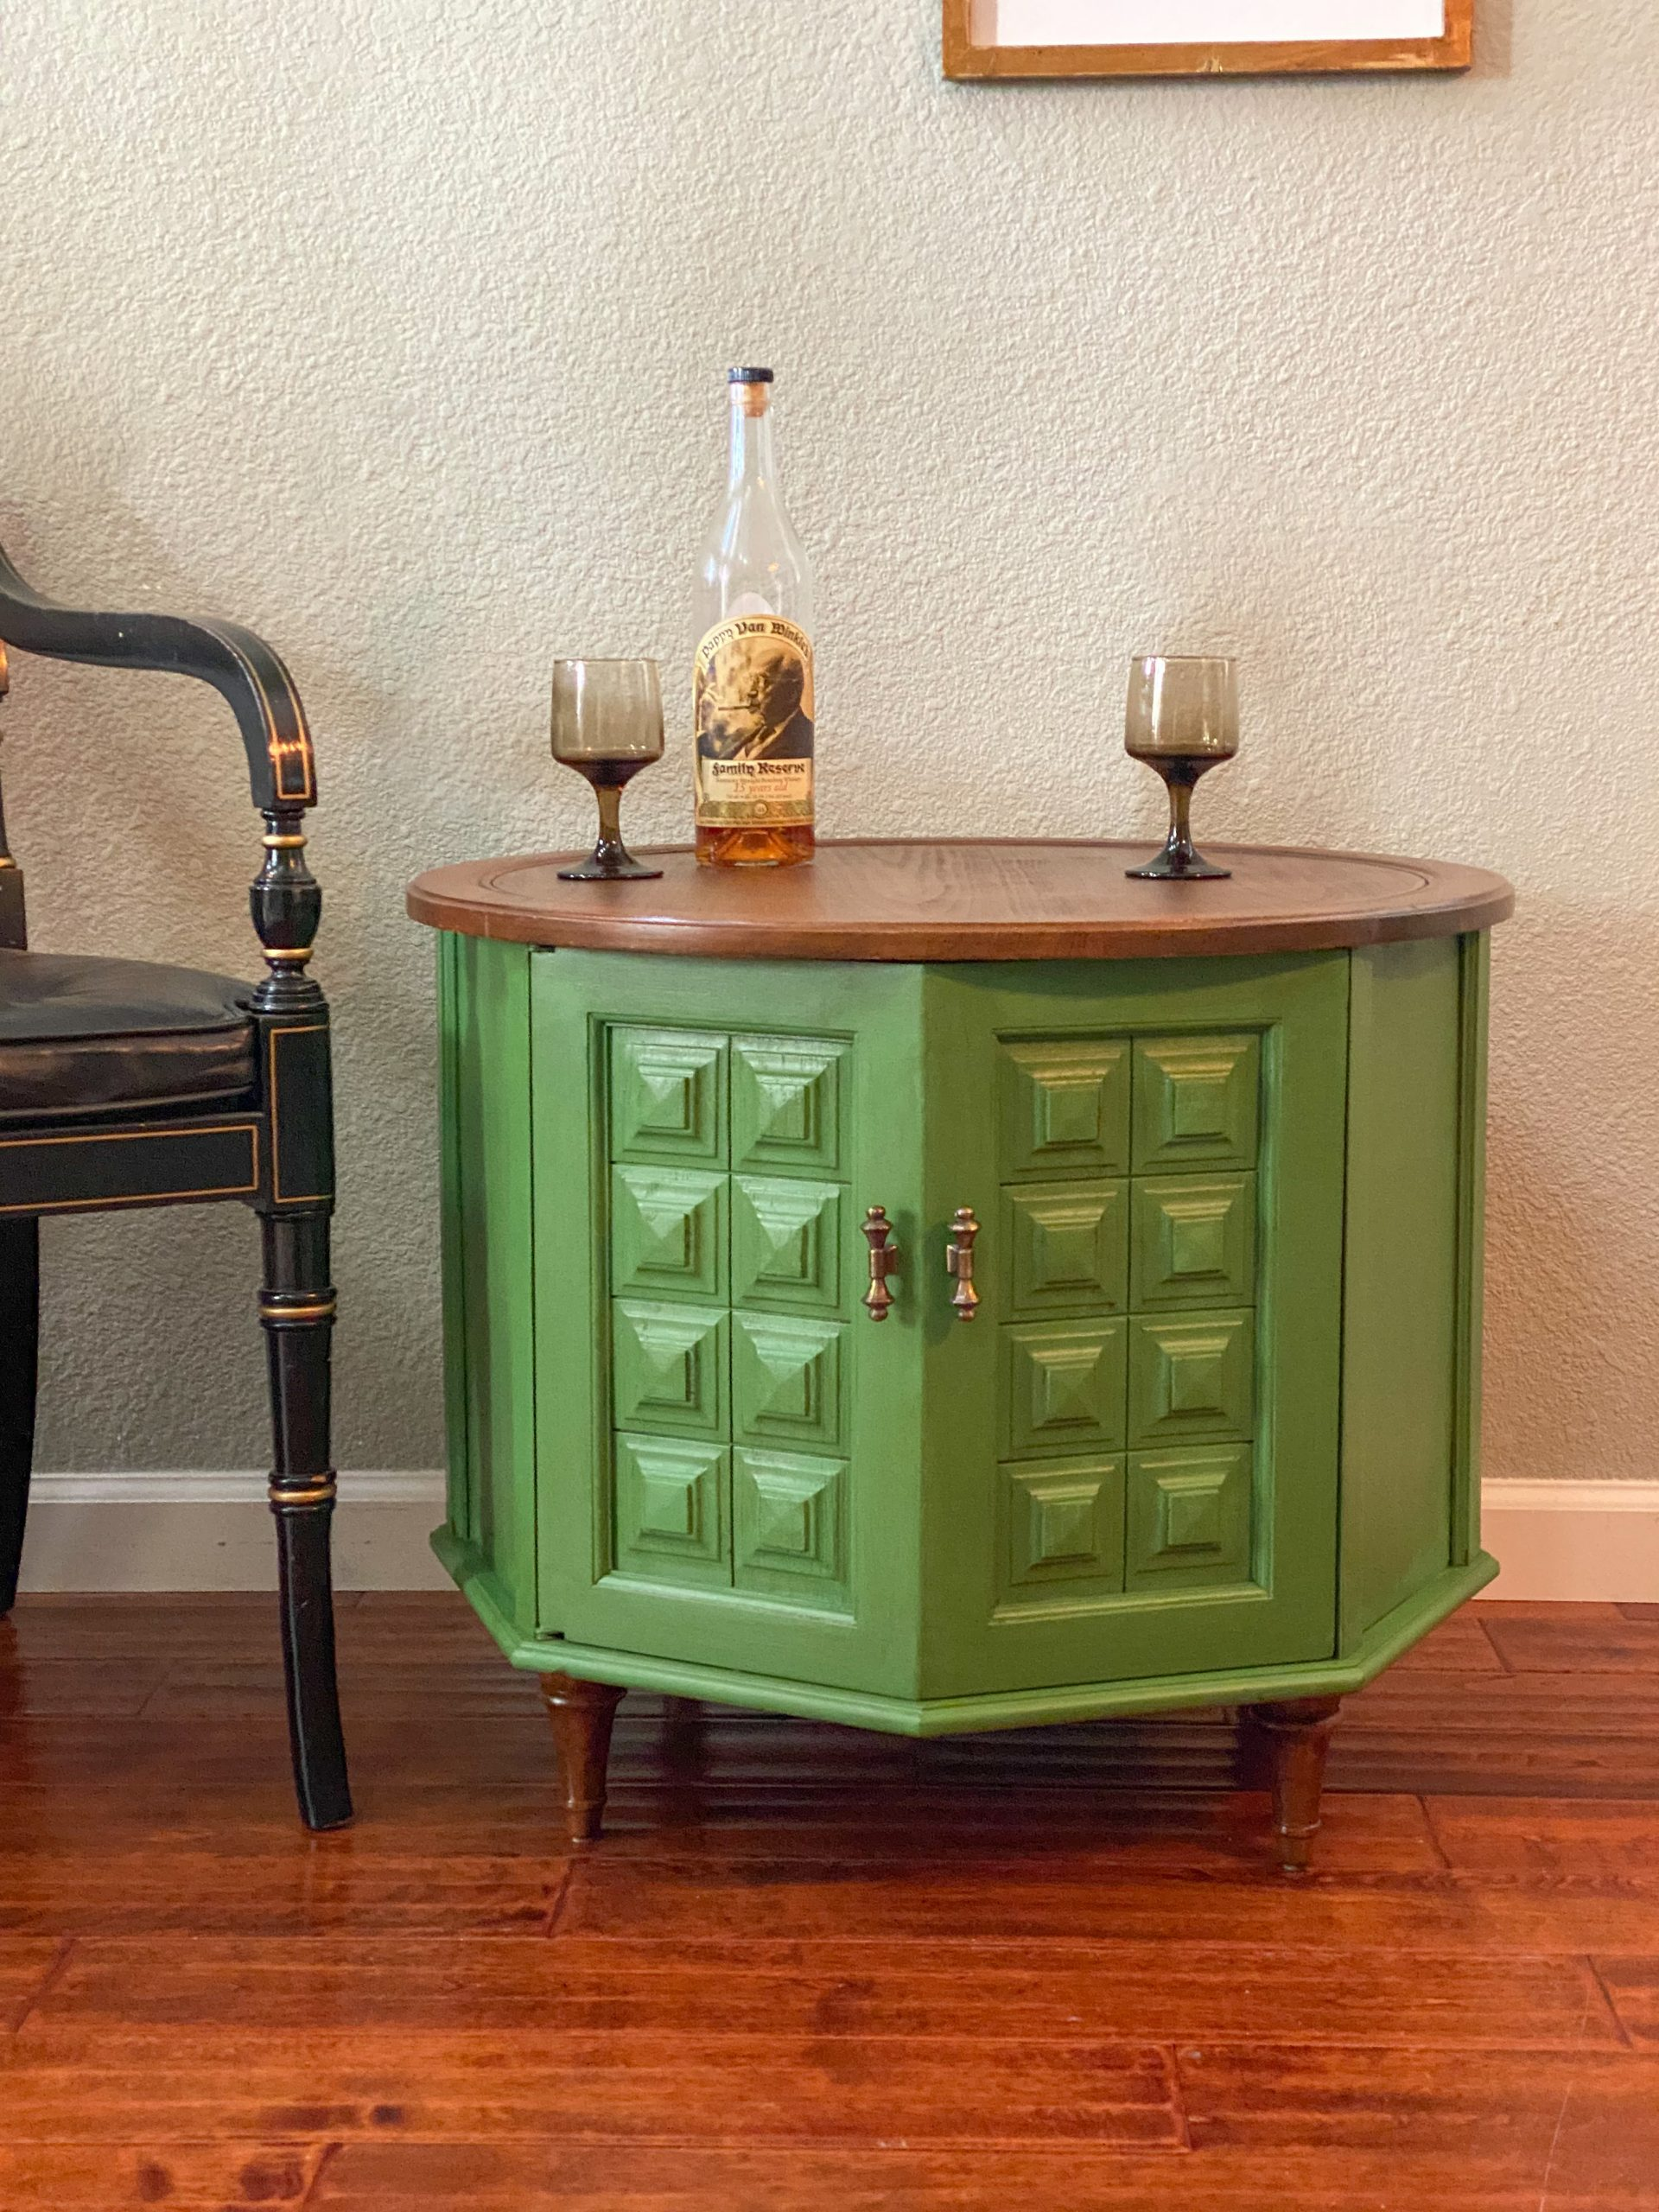 The cutest little vintage side table painted Dublin Green with a Chestnut stained top and feet.